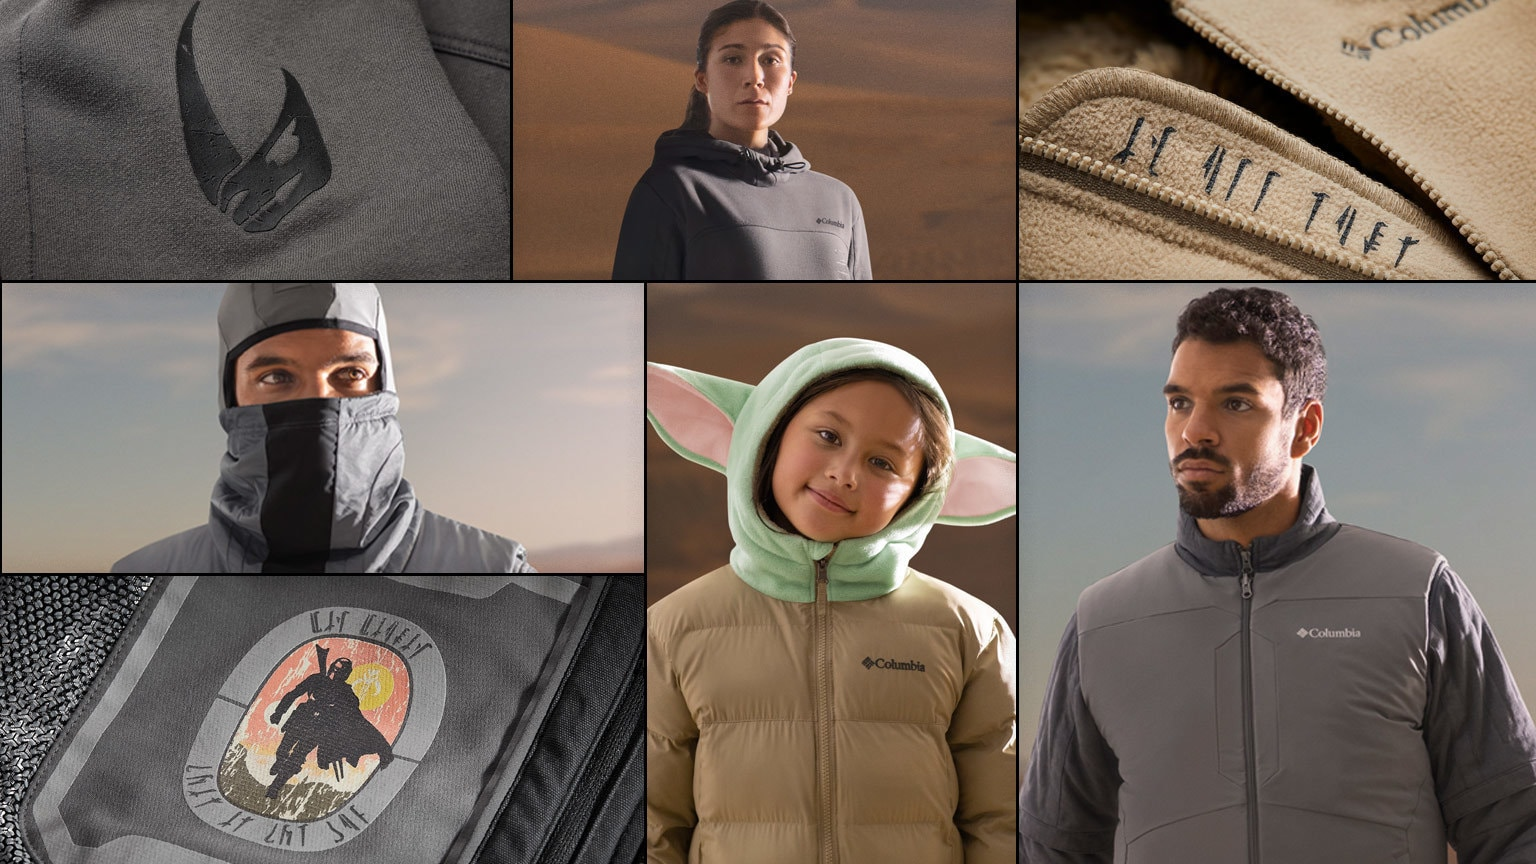 Better Than Beskar: Inside Columbia's New Star Wars Collection Inspired by The Mandalorian